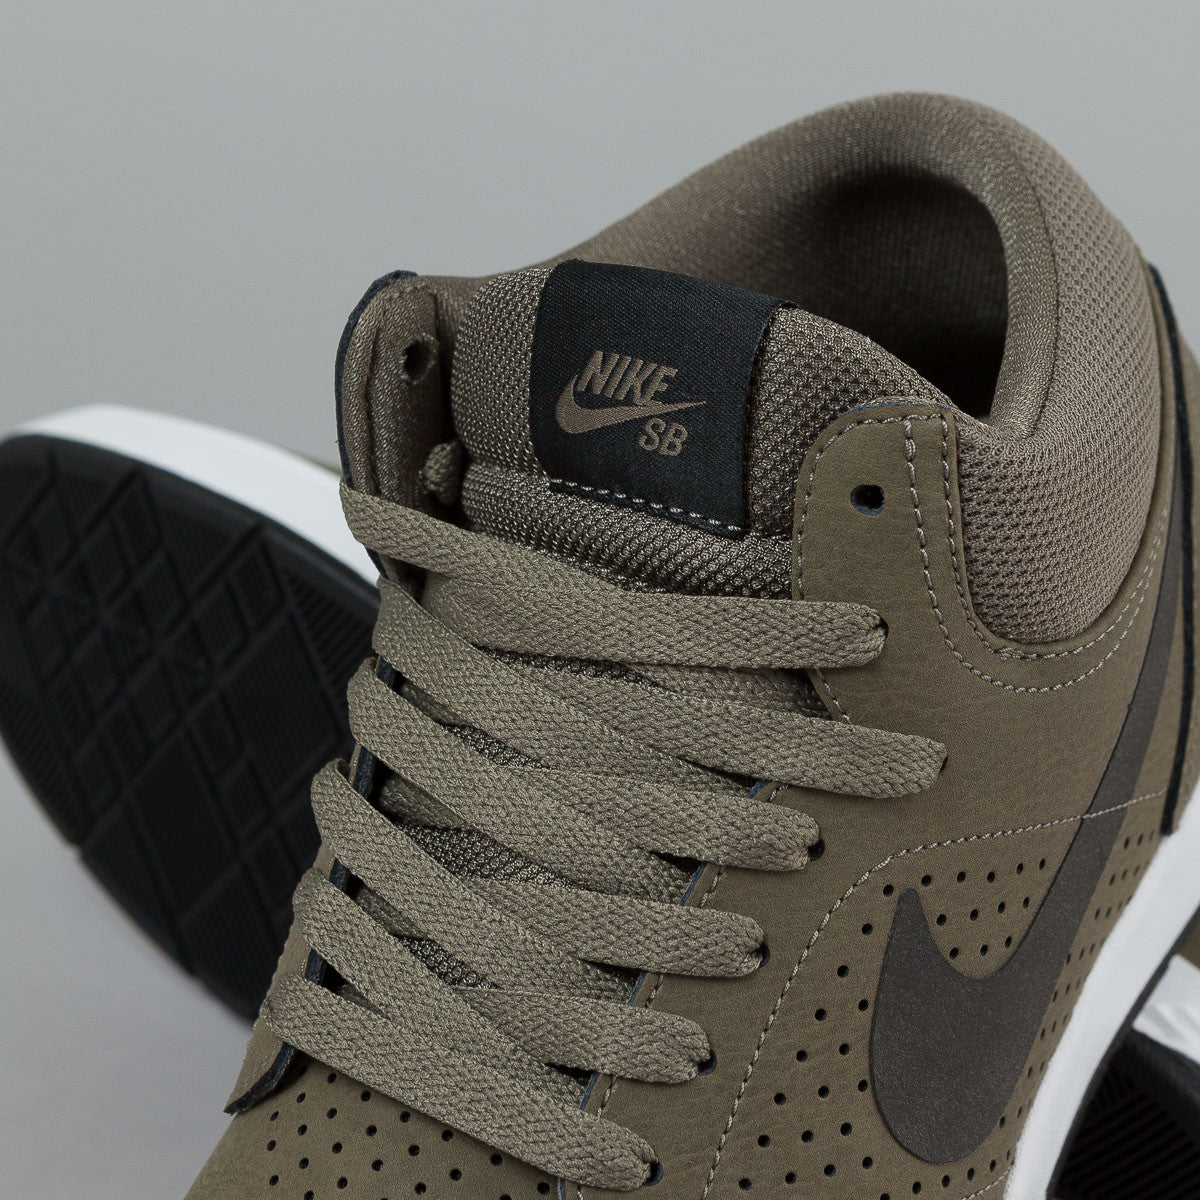 Nike SB Paul Rodriguez 5 MID Shoes - FLT Bronzed Olive / Black - White